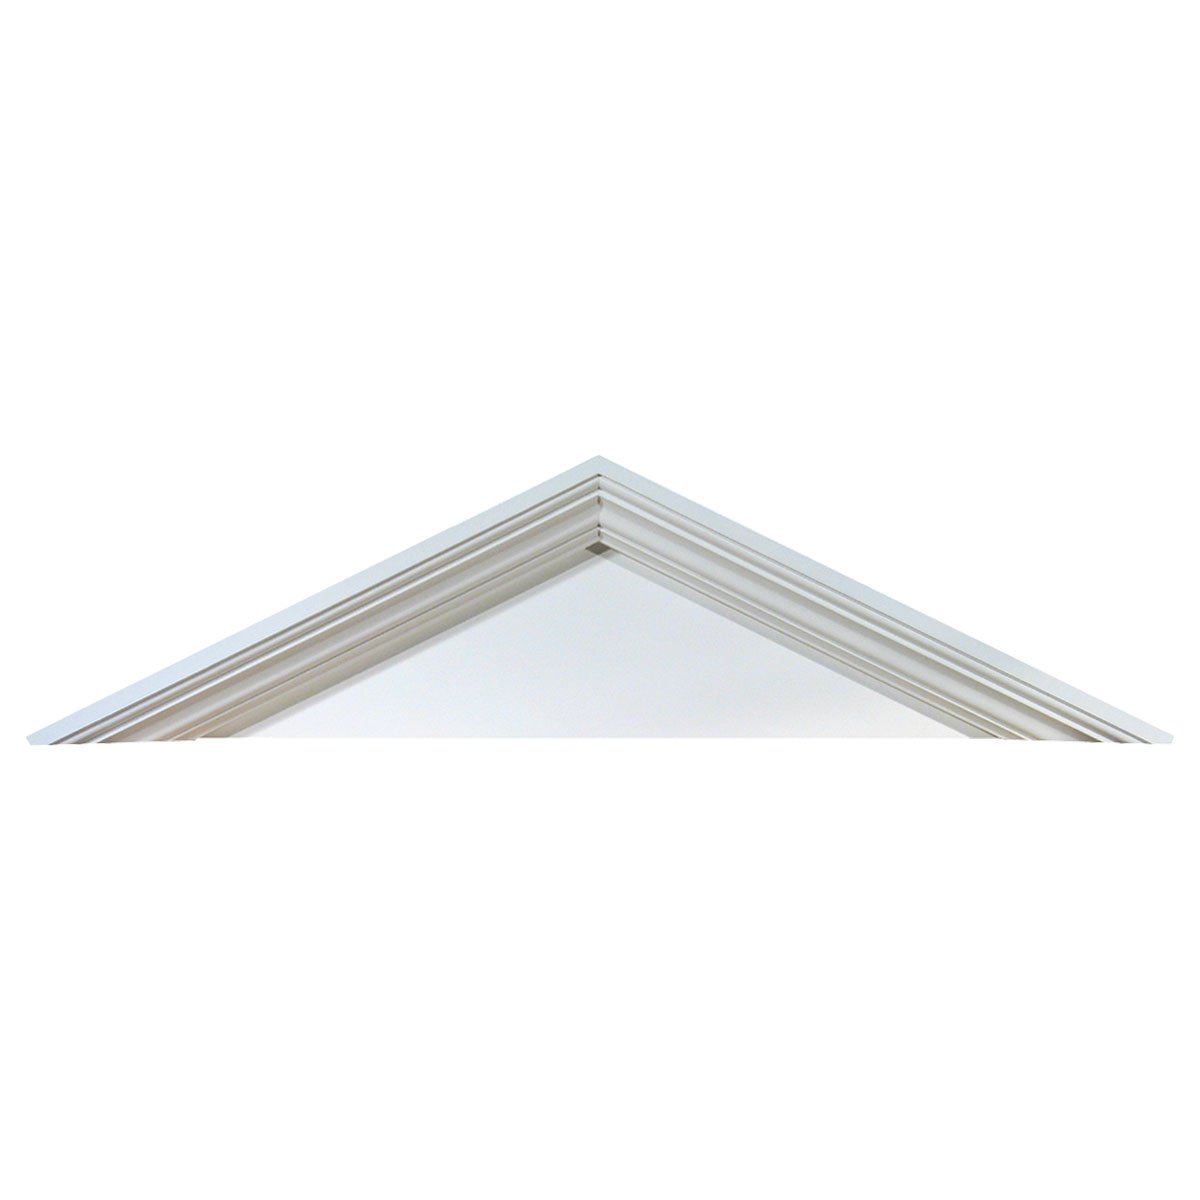 "Fypon PCP667 68 3/4""W x 23 5/8""H x 5 1/2""P, Pitch 8 / 12 Peaked Cap Pediment in Urethane"